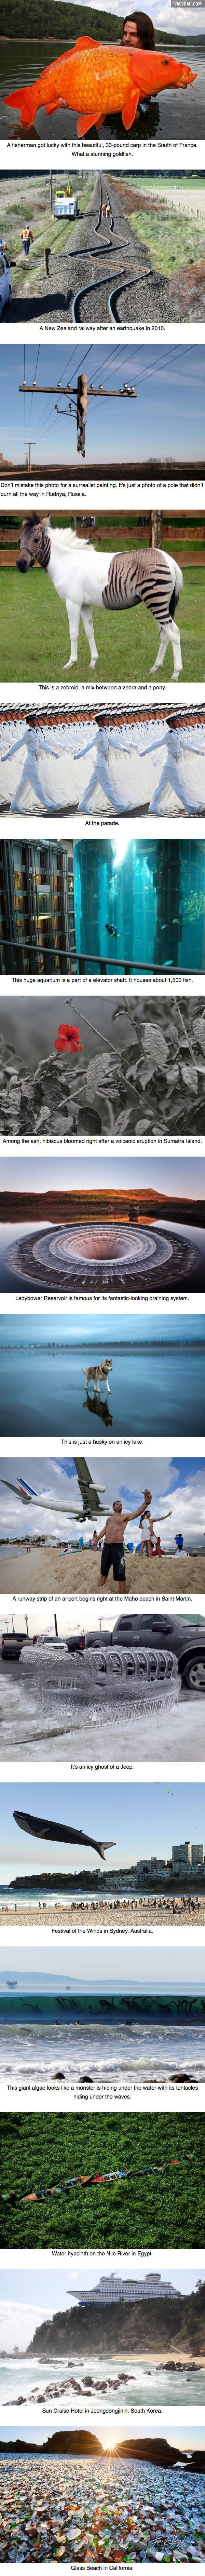 15 Photos That Prove Reality Is Better Than Photoshop - 9GAG